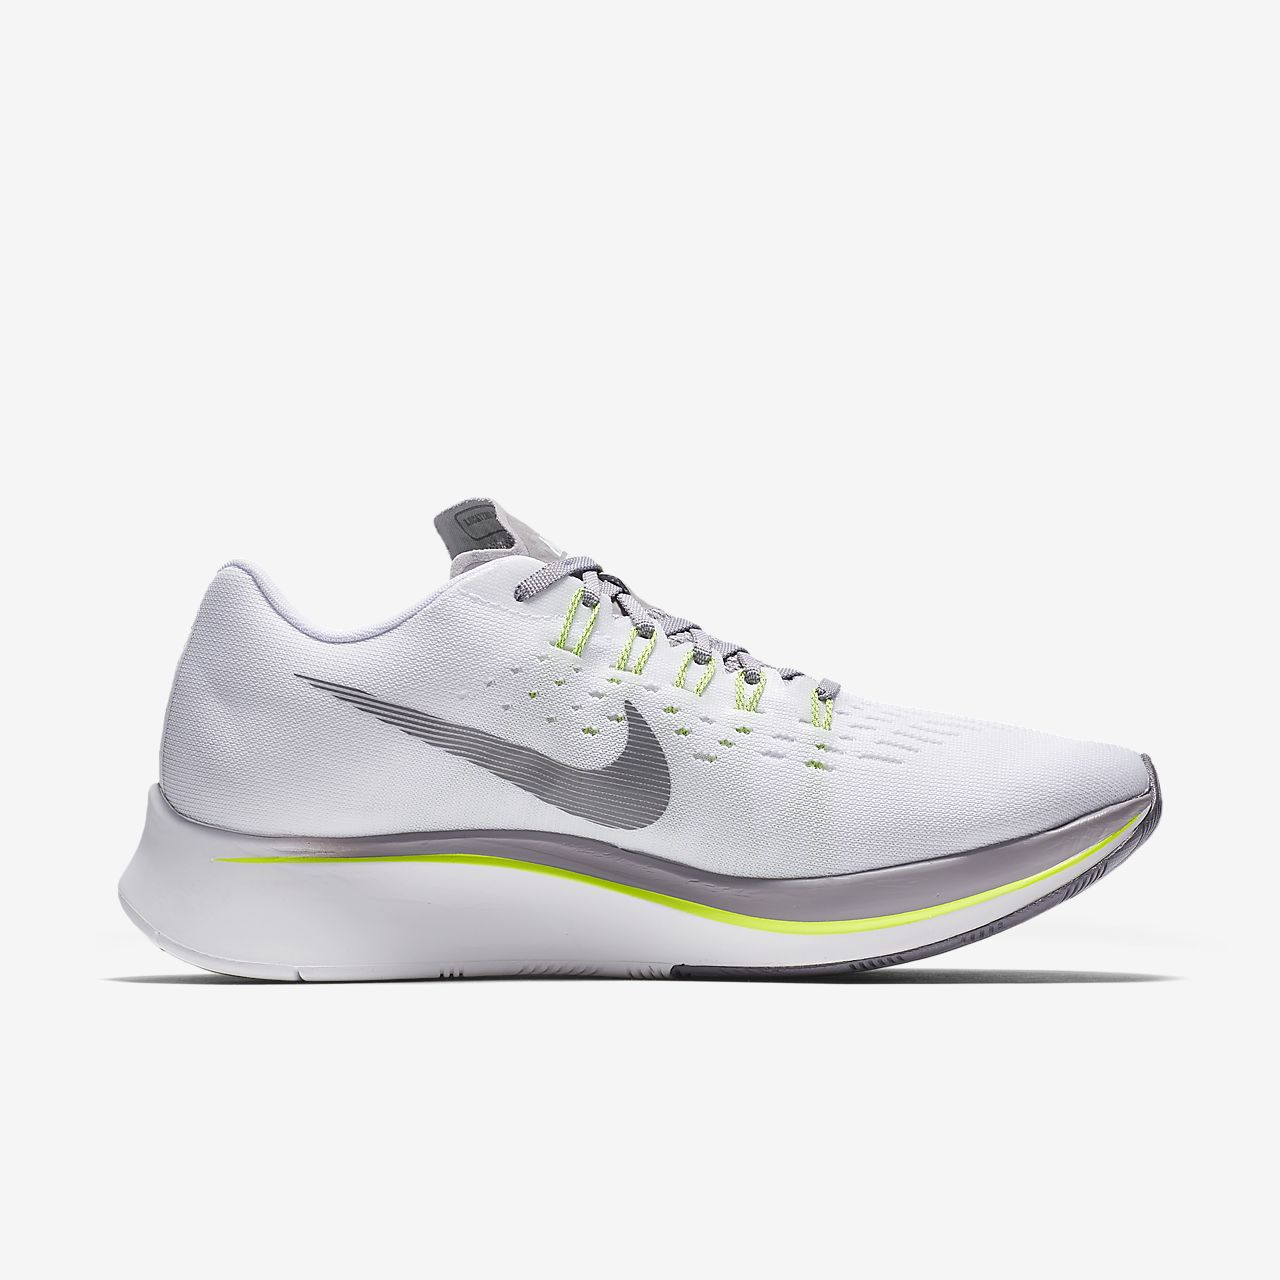 90612d5d8908 Nike Zoom Fly Men s Running Shoe. Nike.com